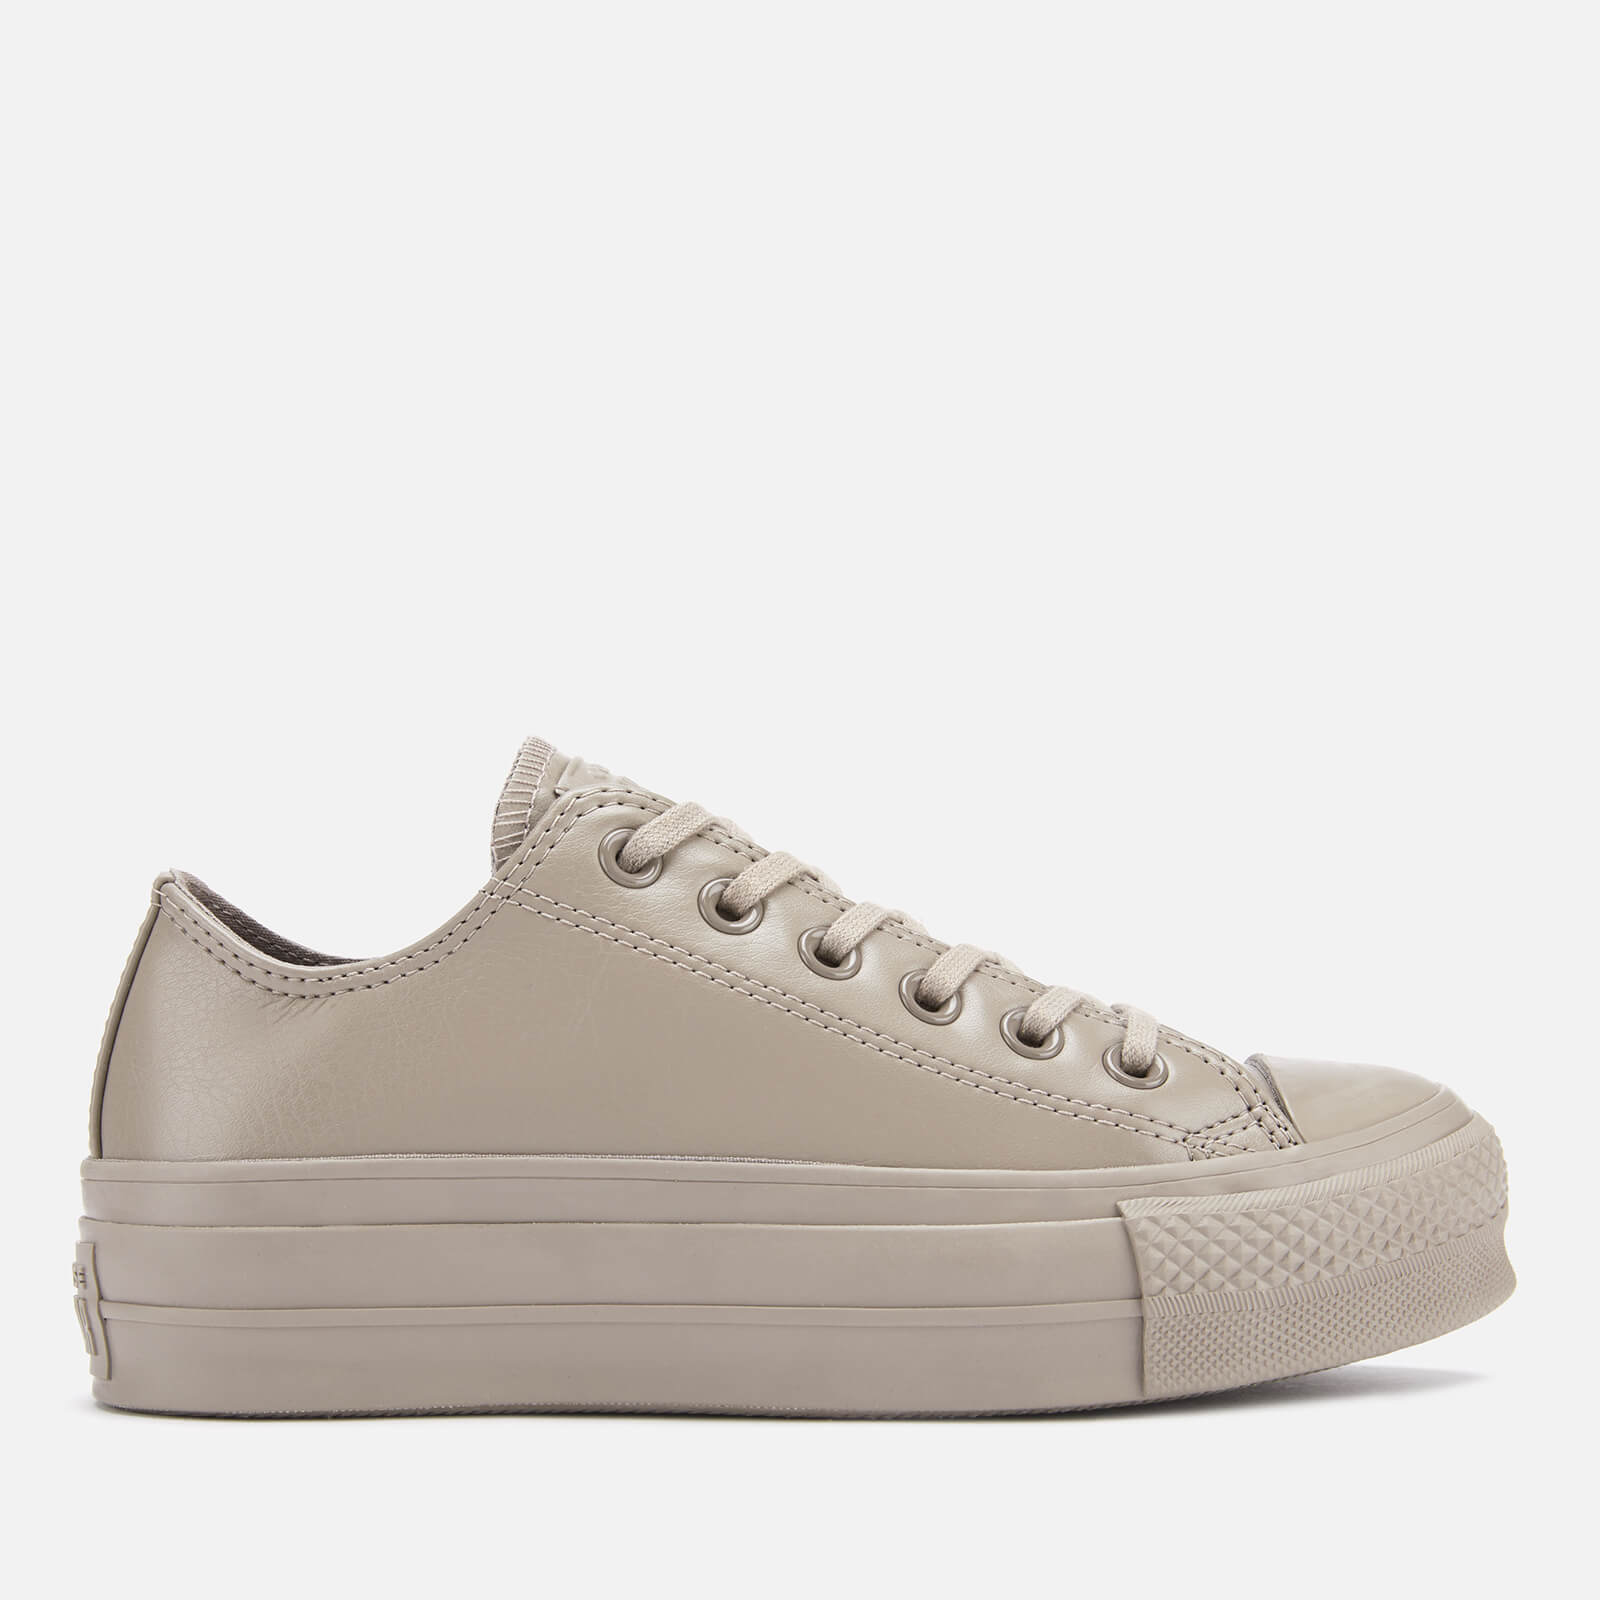 Converse Women's Chuck Taylor All Star Lift Ox Trainers Sepia StoneSepia Stone